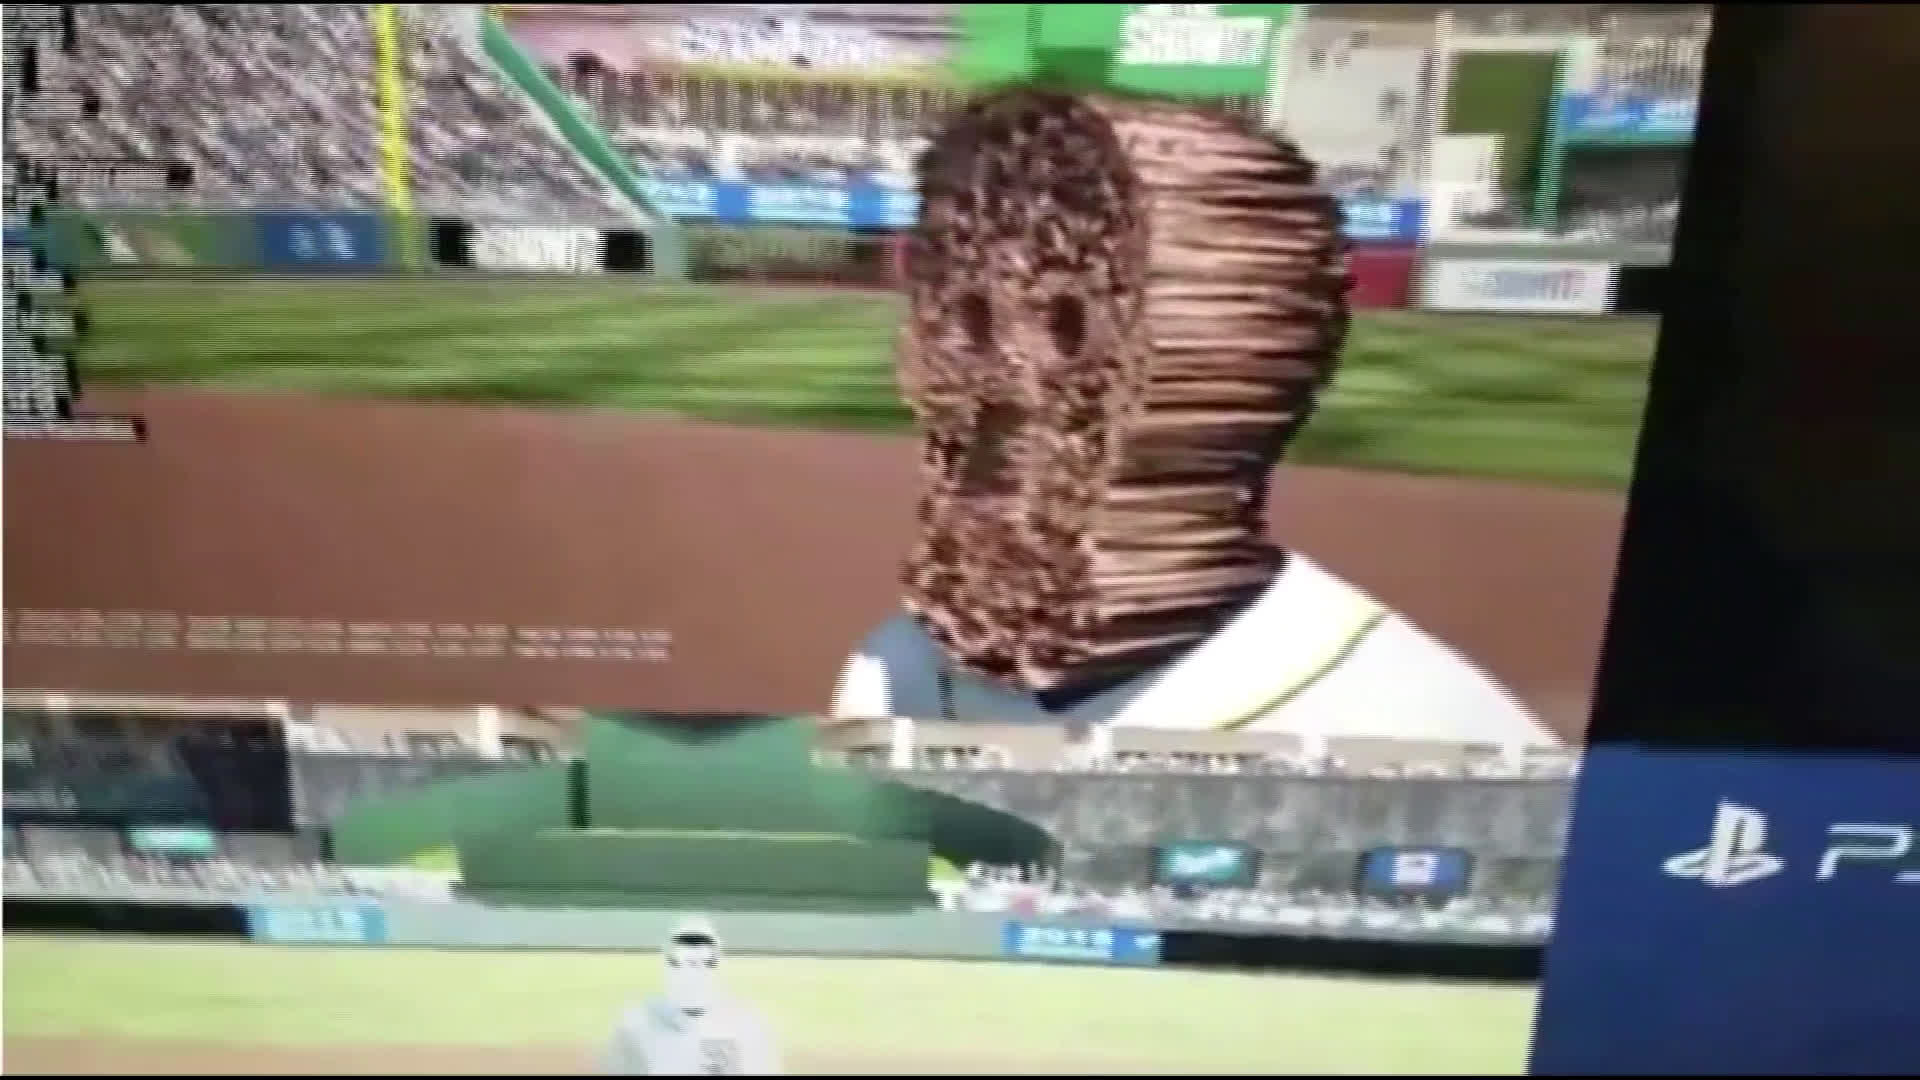 Mlb The Show 17 Glitch Turns Players Into Terrifying Creatures Thescore Com